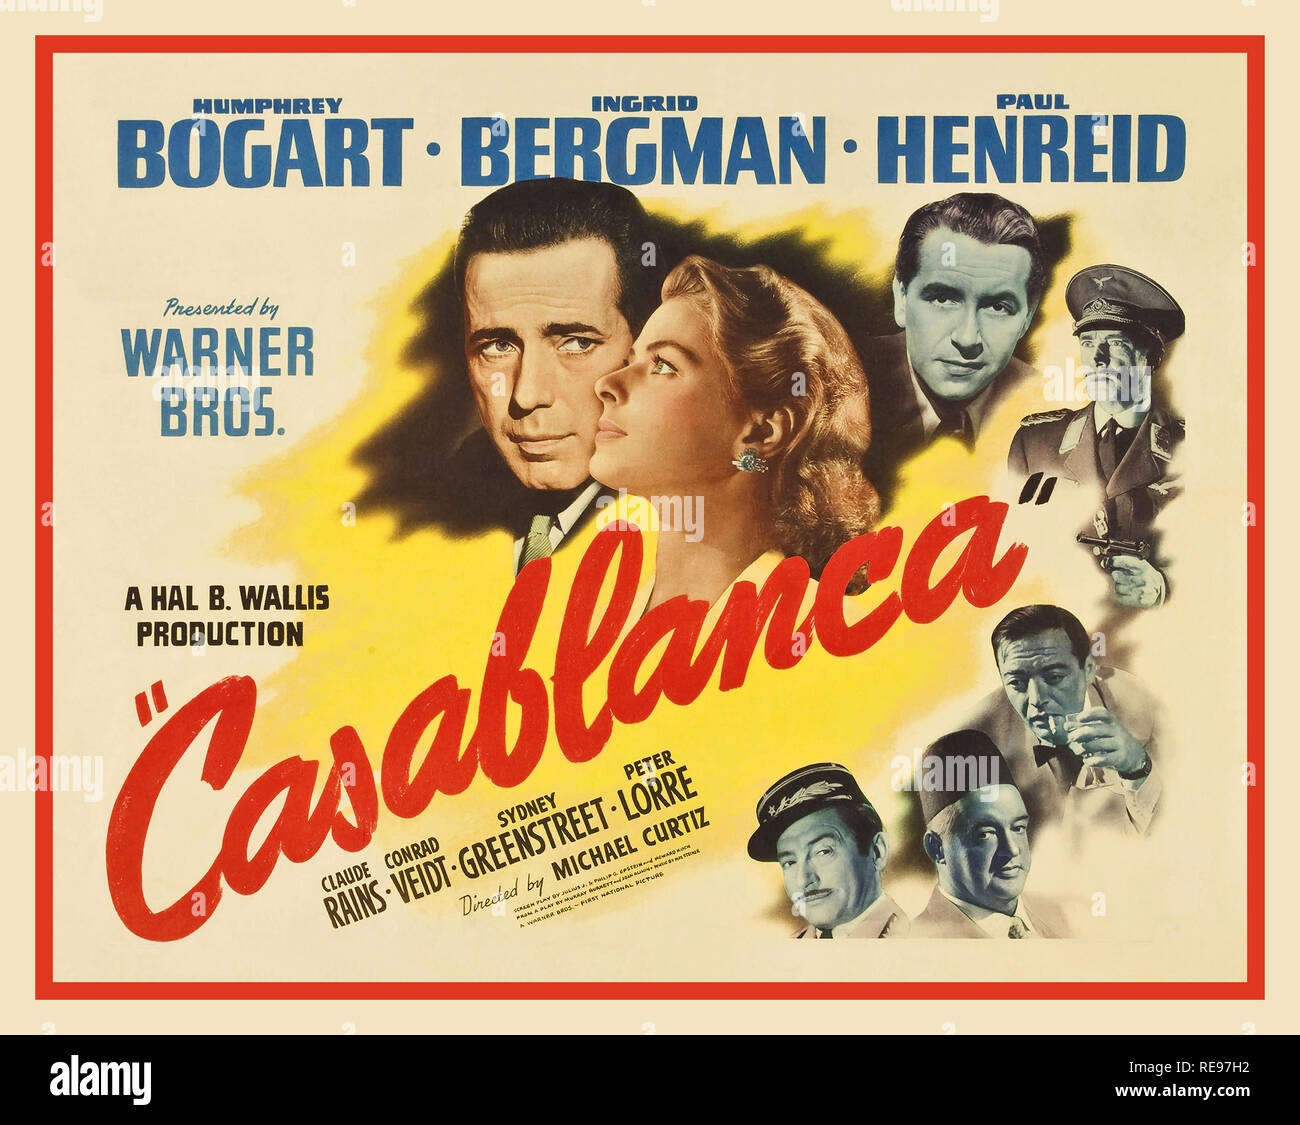 CASABLANCA 1940's Vintage Film Movie Poster Casablanca a 1942 American romantic drama film directed by Michael Curtiz. The film stars Humphrey Bogart, Ingrid Bergman, and Paul Henreid; it also features Claude Rains, Conrad Veidt, Sydney Greenstreet, Peter Lorre, and Dooley Wilson. Set during World War II, it focuses on an American expatriate who must choose between his love for a woman and helping her and her husband, a Czech Resistance leader, escape from the Vichy-controlled city of Casablanca to continue his fight against the Nazis - Stock Image